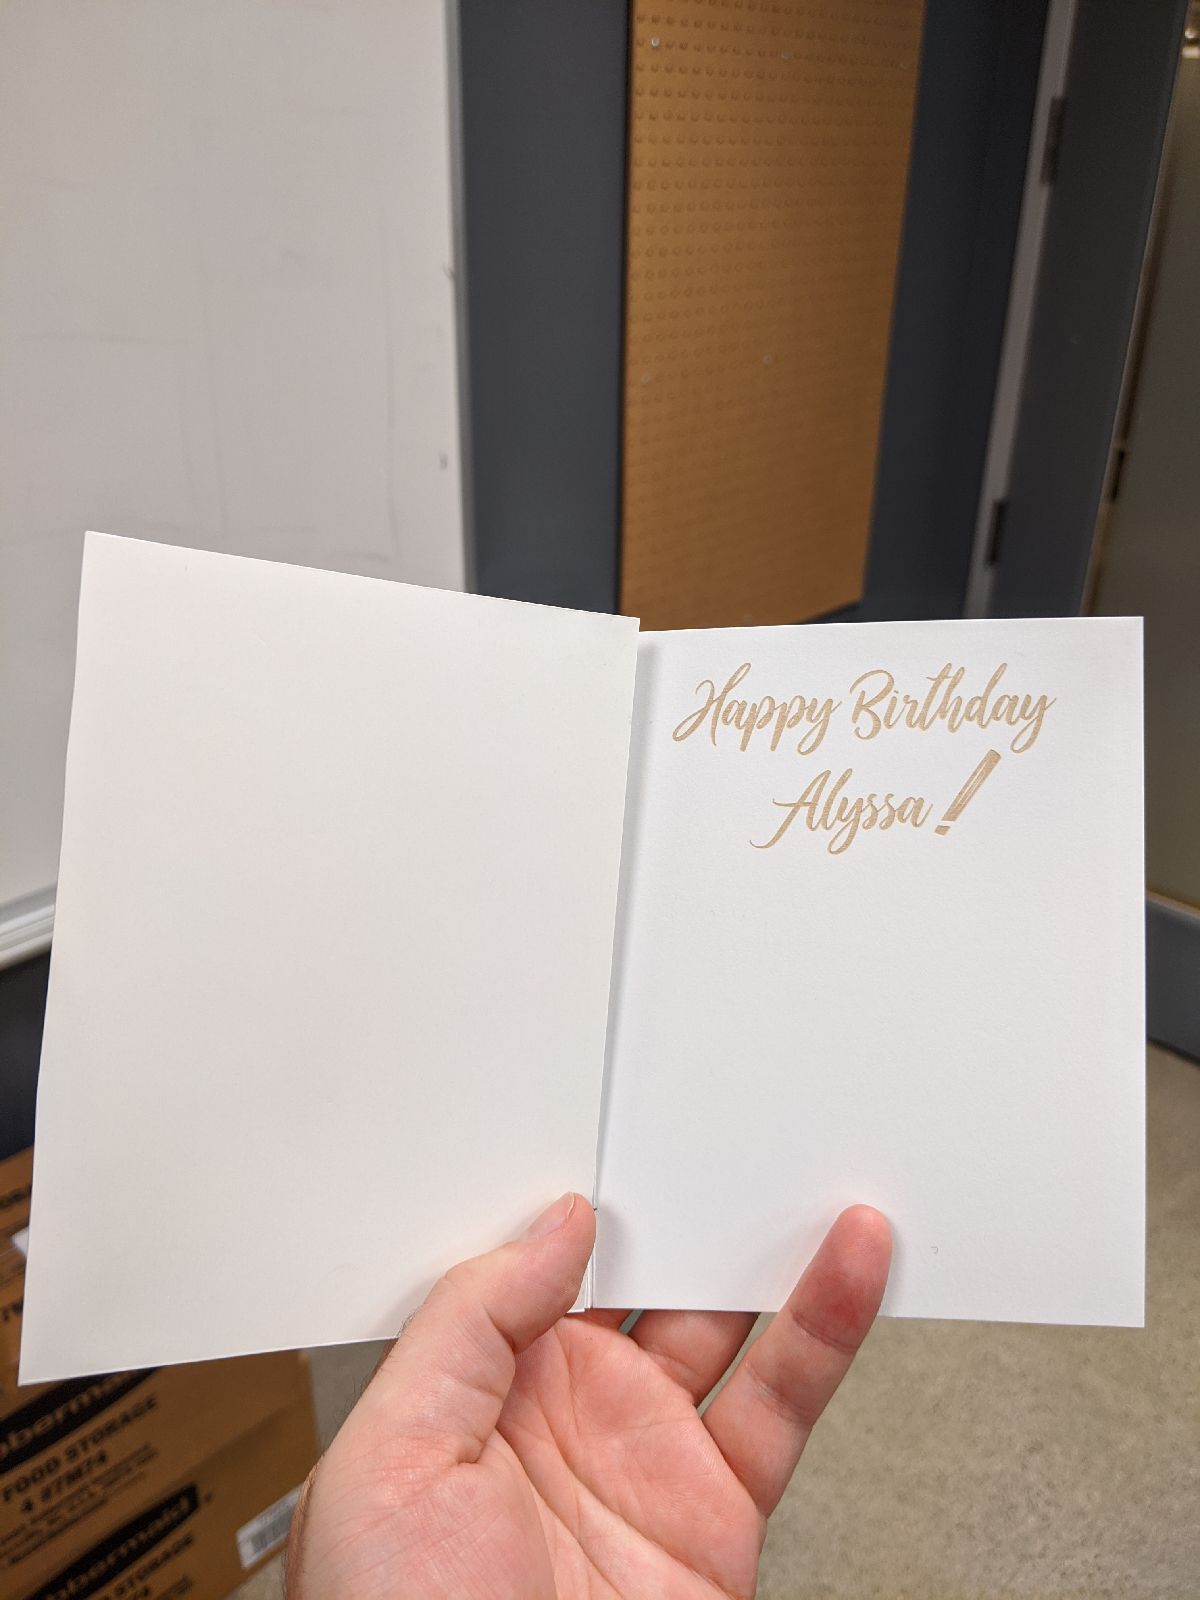 """Photo of the inside of the card, with """"Happy Birthday Alyssa!"""" laser etched. It looks like it's printed in tan ink"""